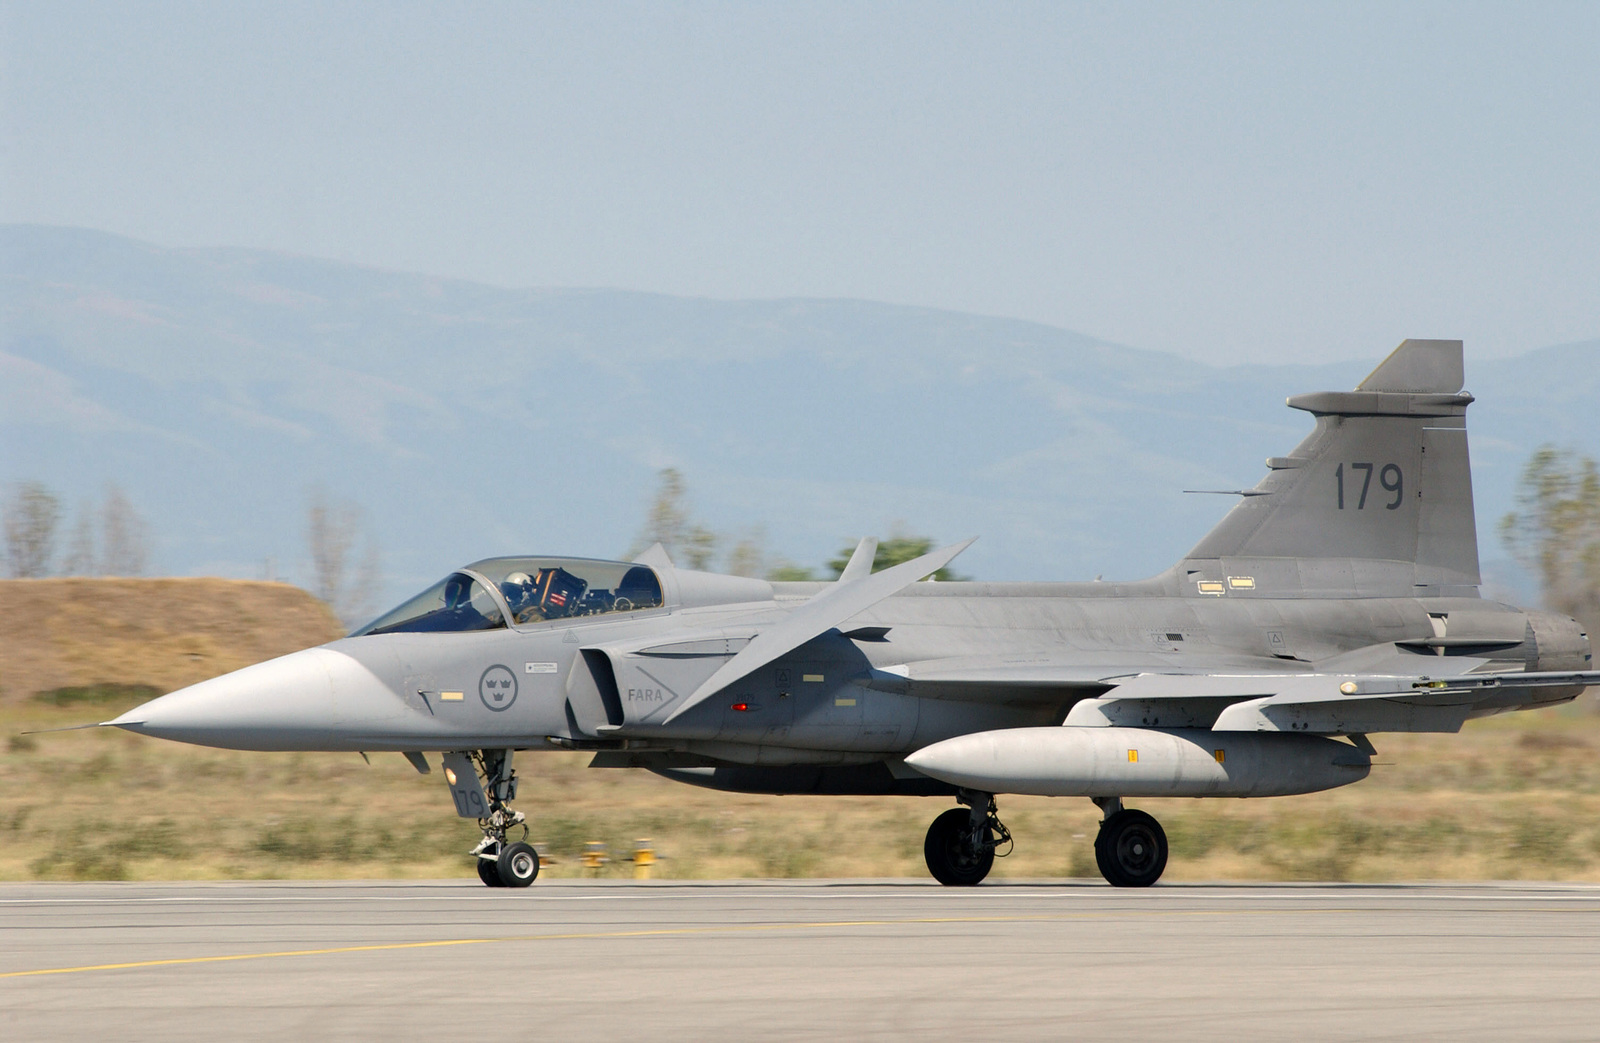 A Swedish Air Force JAS-39 Gripen fighter aircraft arrives in support of the Partnership for Peace Exercise Cooperative Key 2003 at Graf Ignatievo Air Base (AB), Bulgaria (BGR) - U.S. National Archives